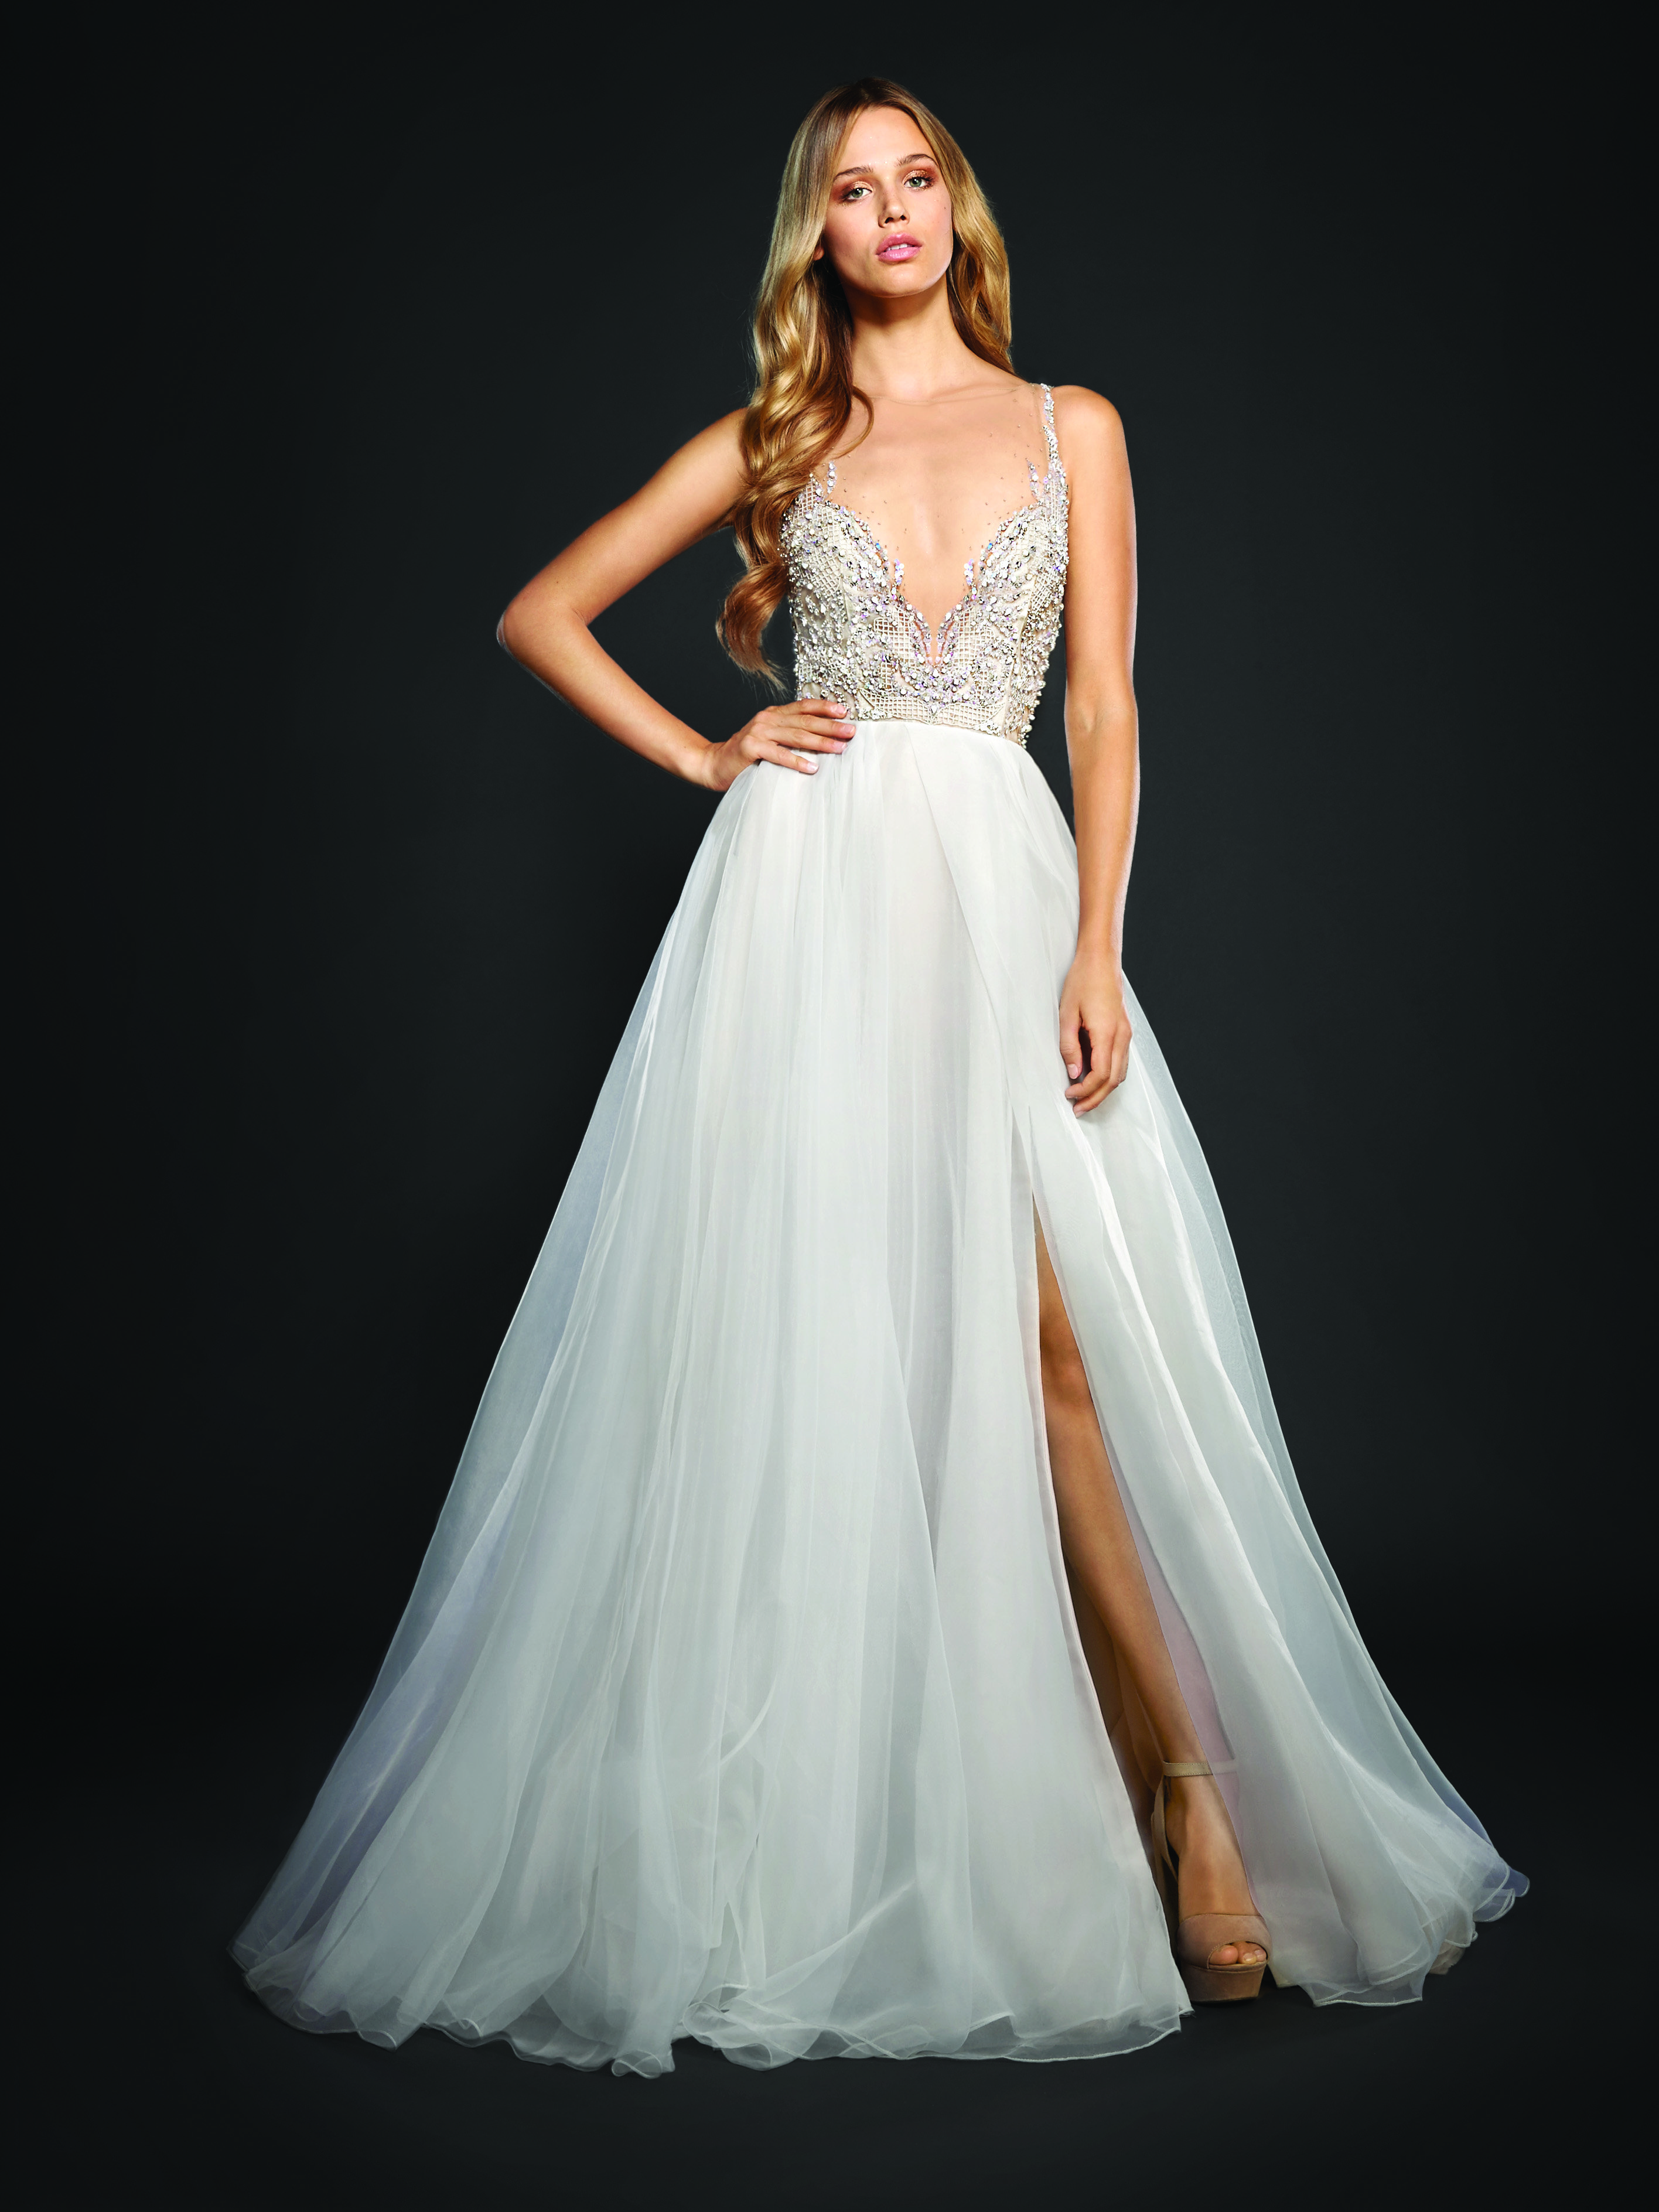 Bridal Gowns and Wedding Dresses by JLM Couture - Style 6701 Kenny